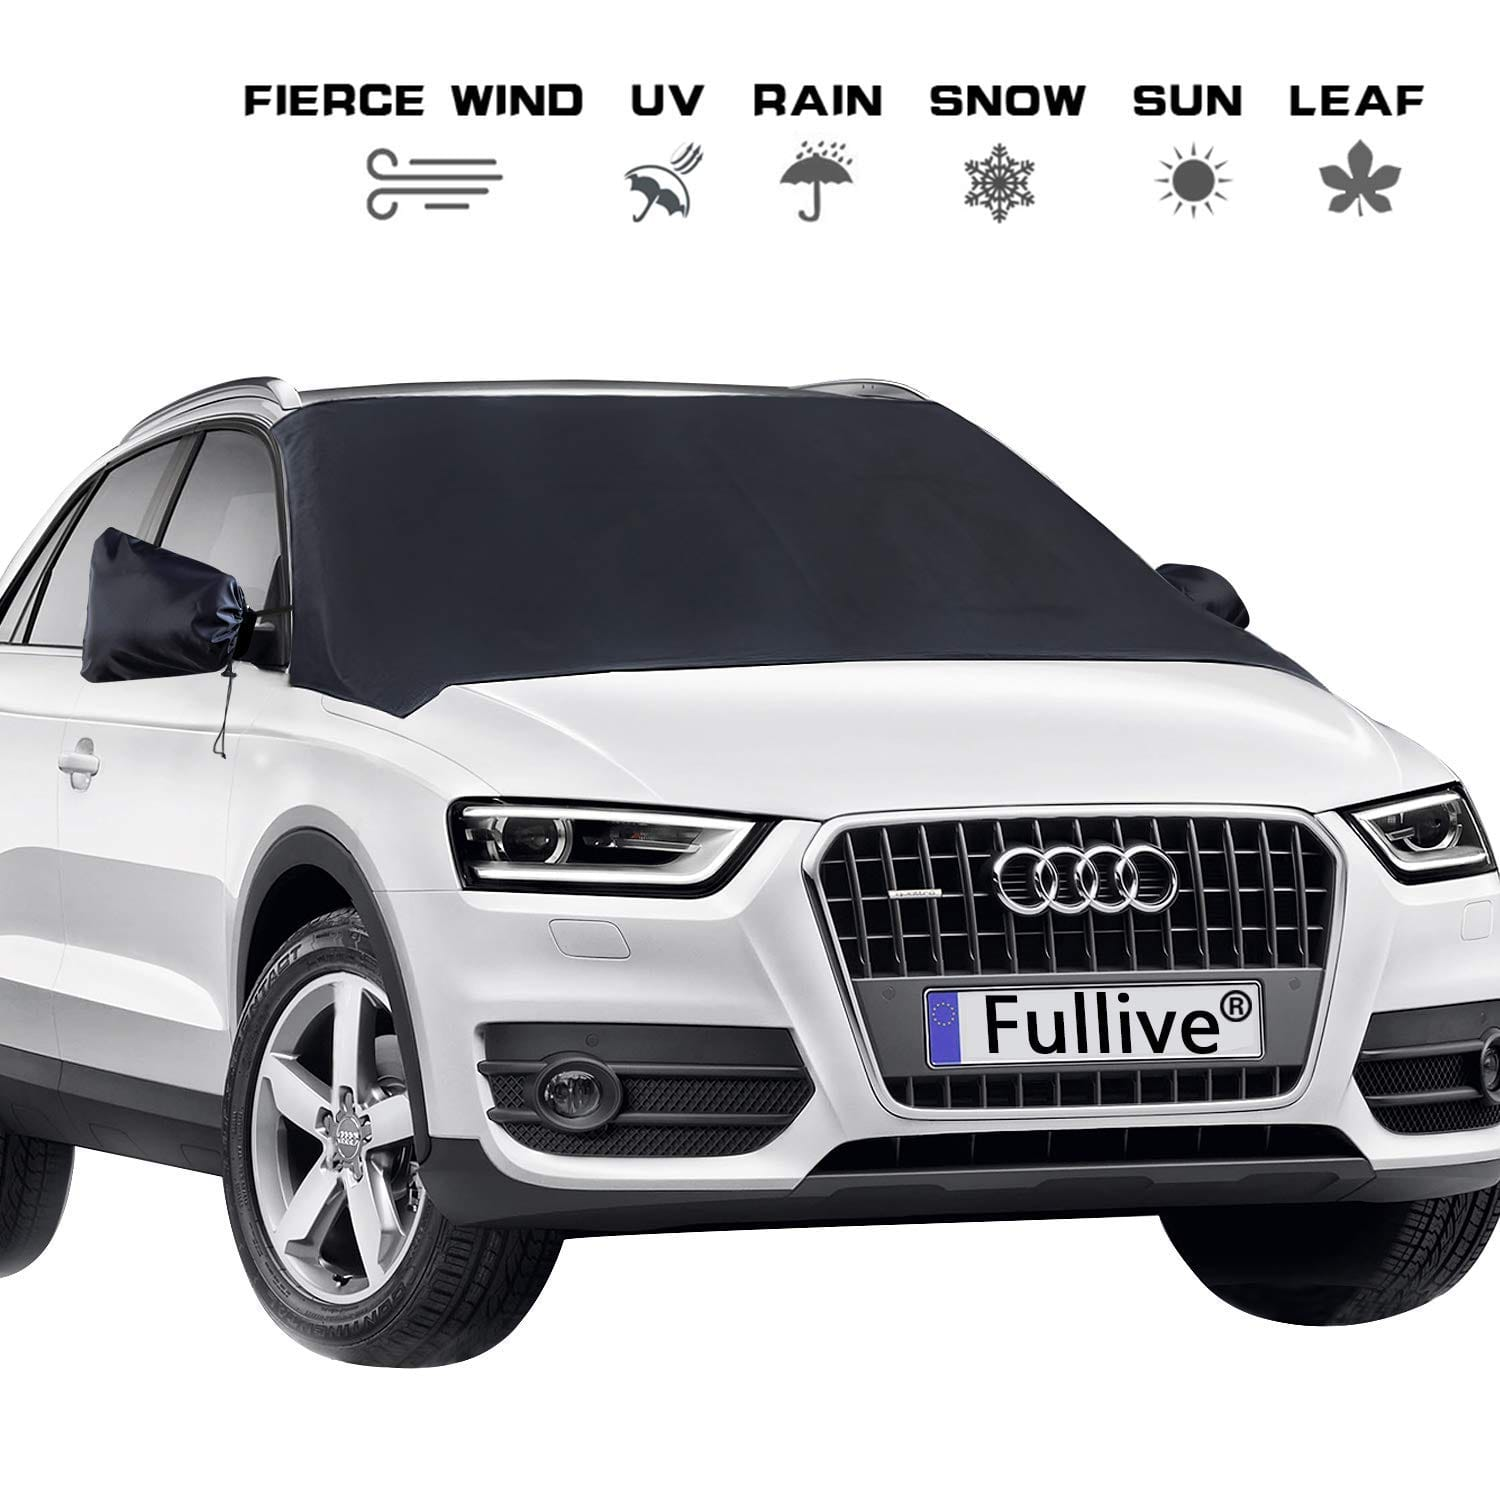 Premium Quality 300D Oxford Fabric Car Snow Cover Extra Large Magnets Snow Cover Universal Fit Any Car Truck Van and SUV Windshield Snow Cover